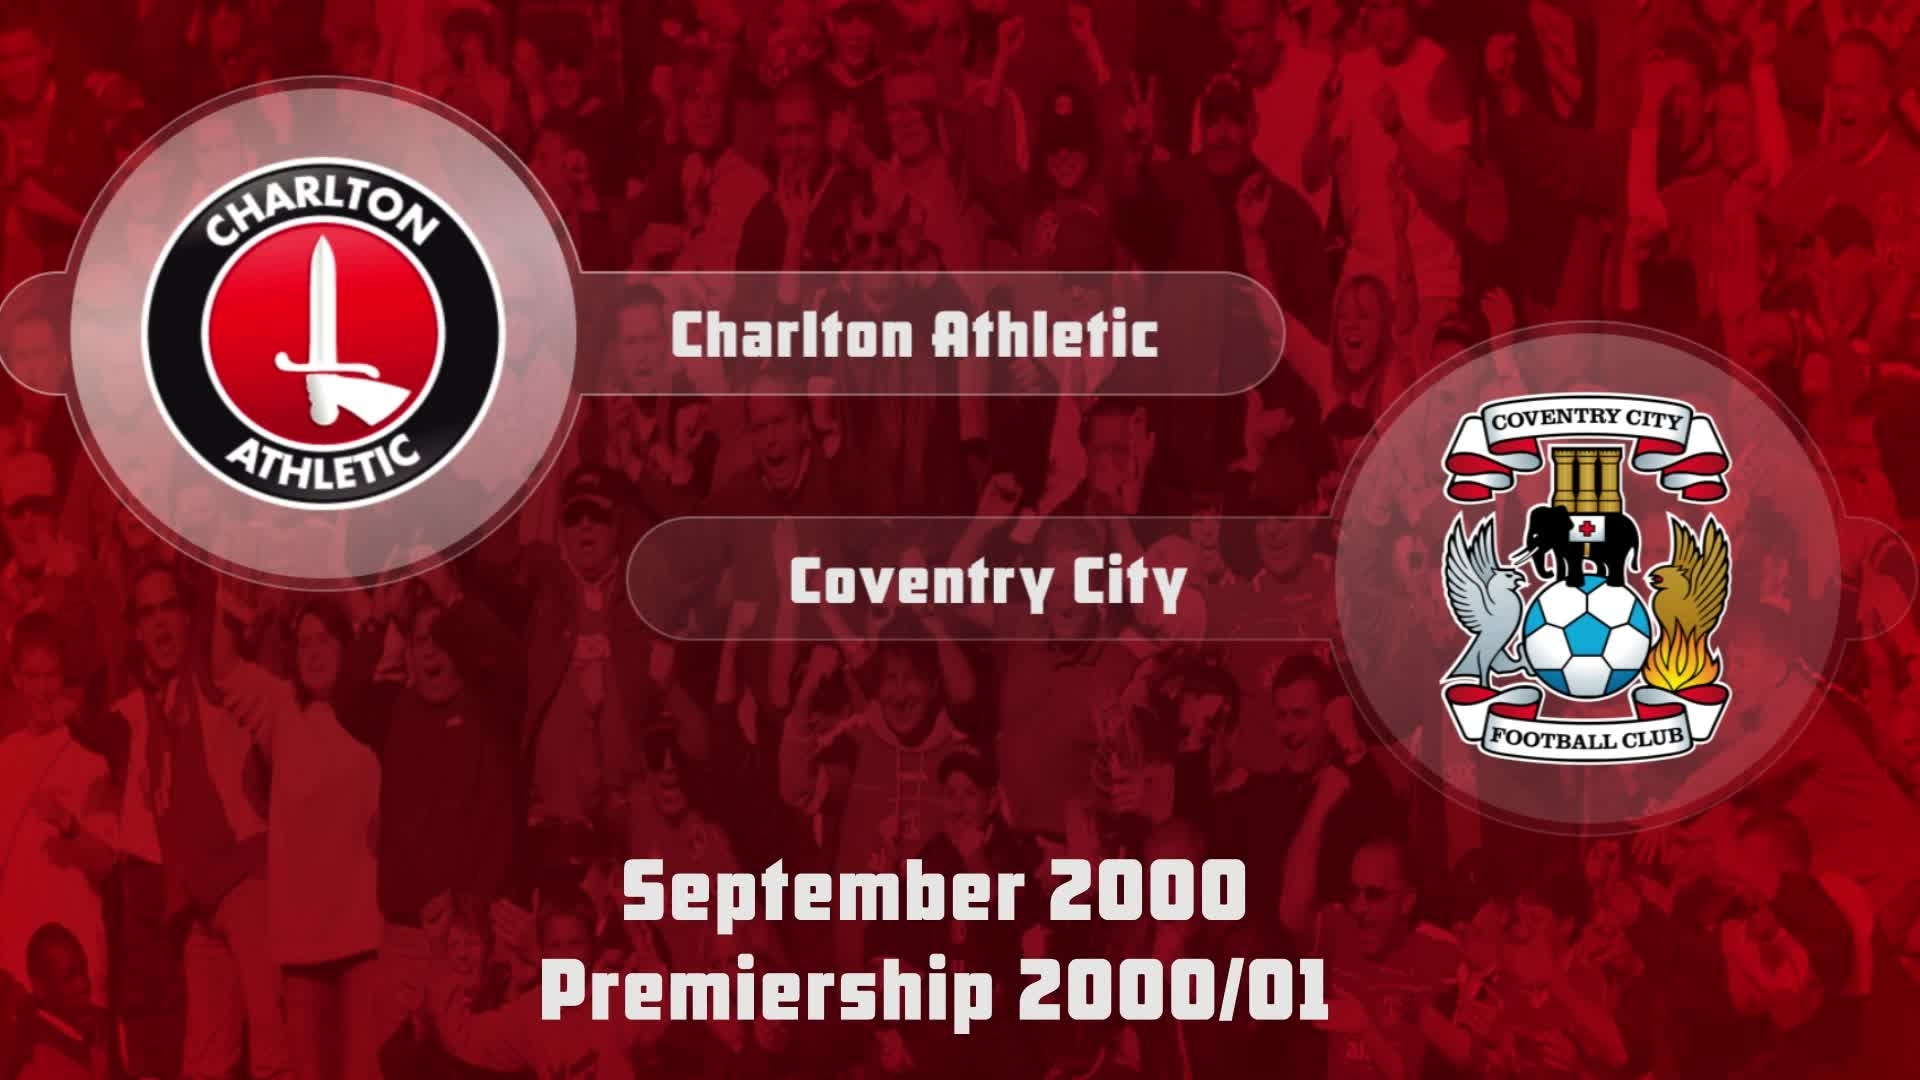 10 HIGHLIGHTS | Charlton 2 Coventry City 2 (Sept 2000)